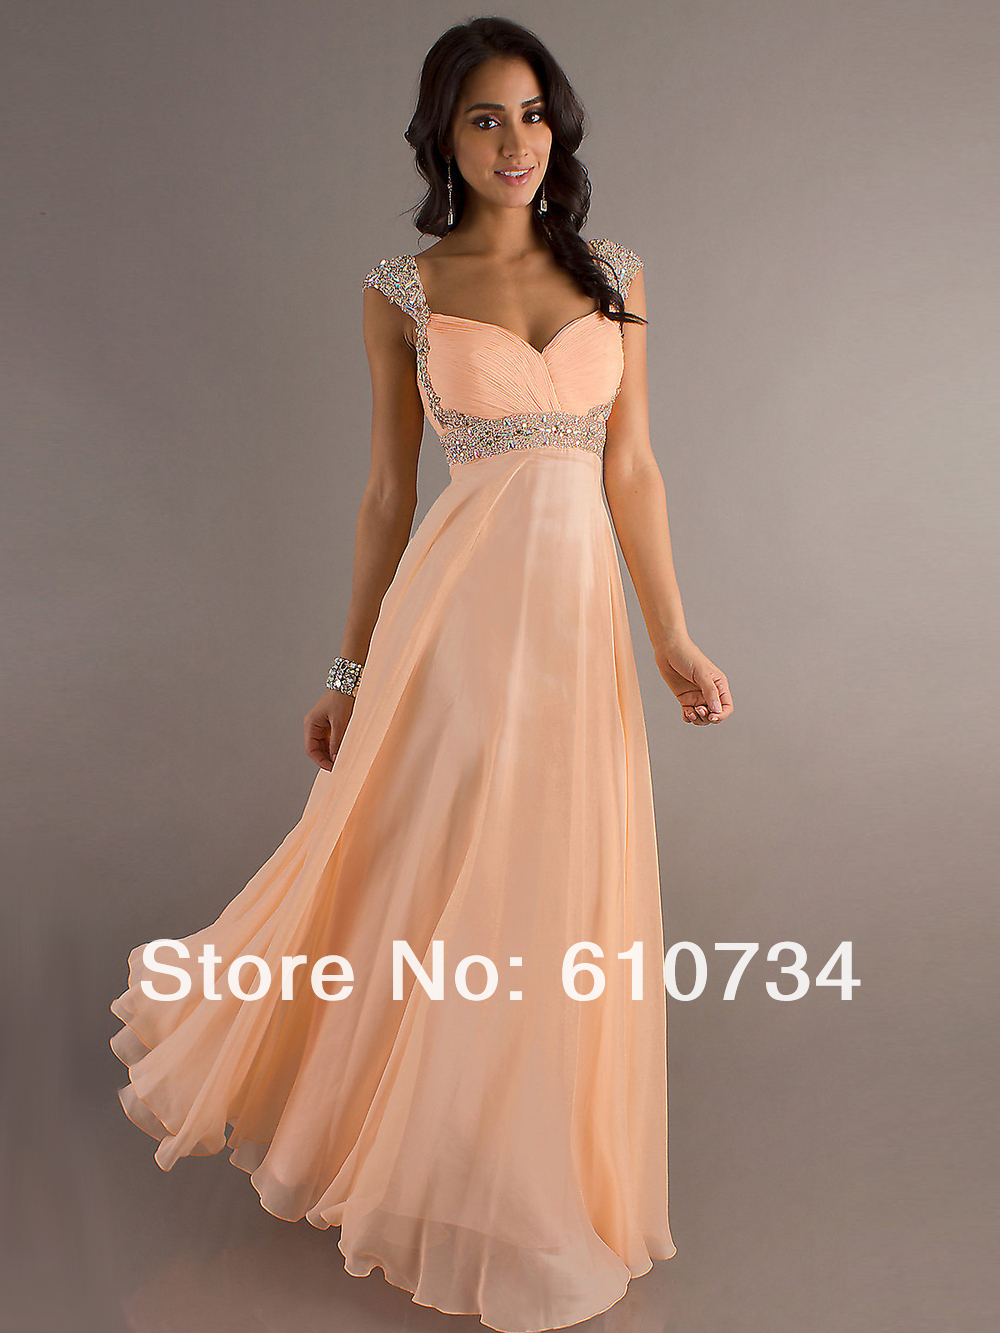 Free Shipping! PS02 In Stock Chiifon Beaded Ruffle Floor Length Prom Dress 2014-in Prom Dresses from Apparel & Accessories on Aliexpress.com